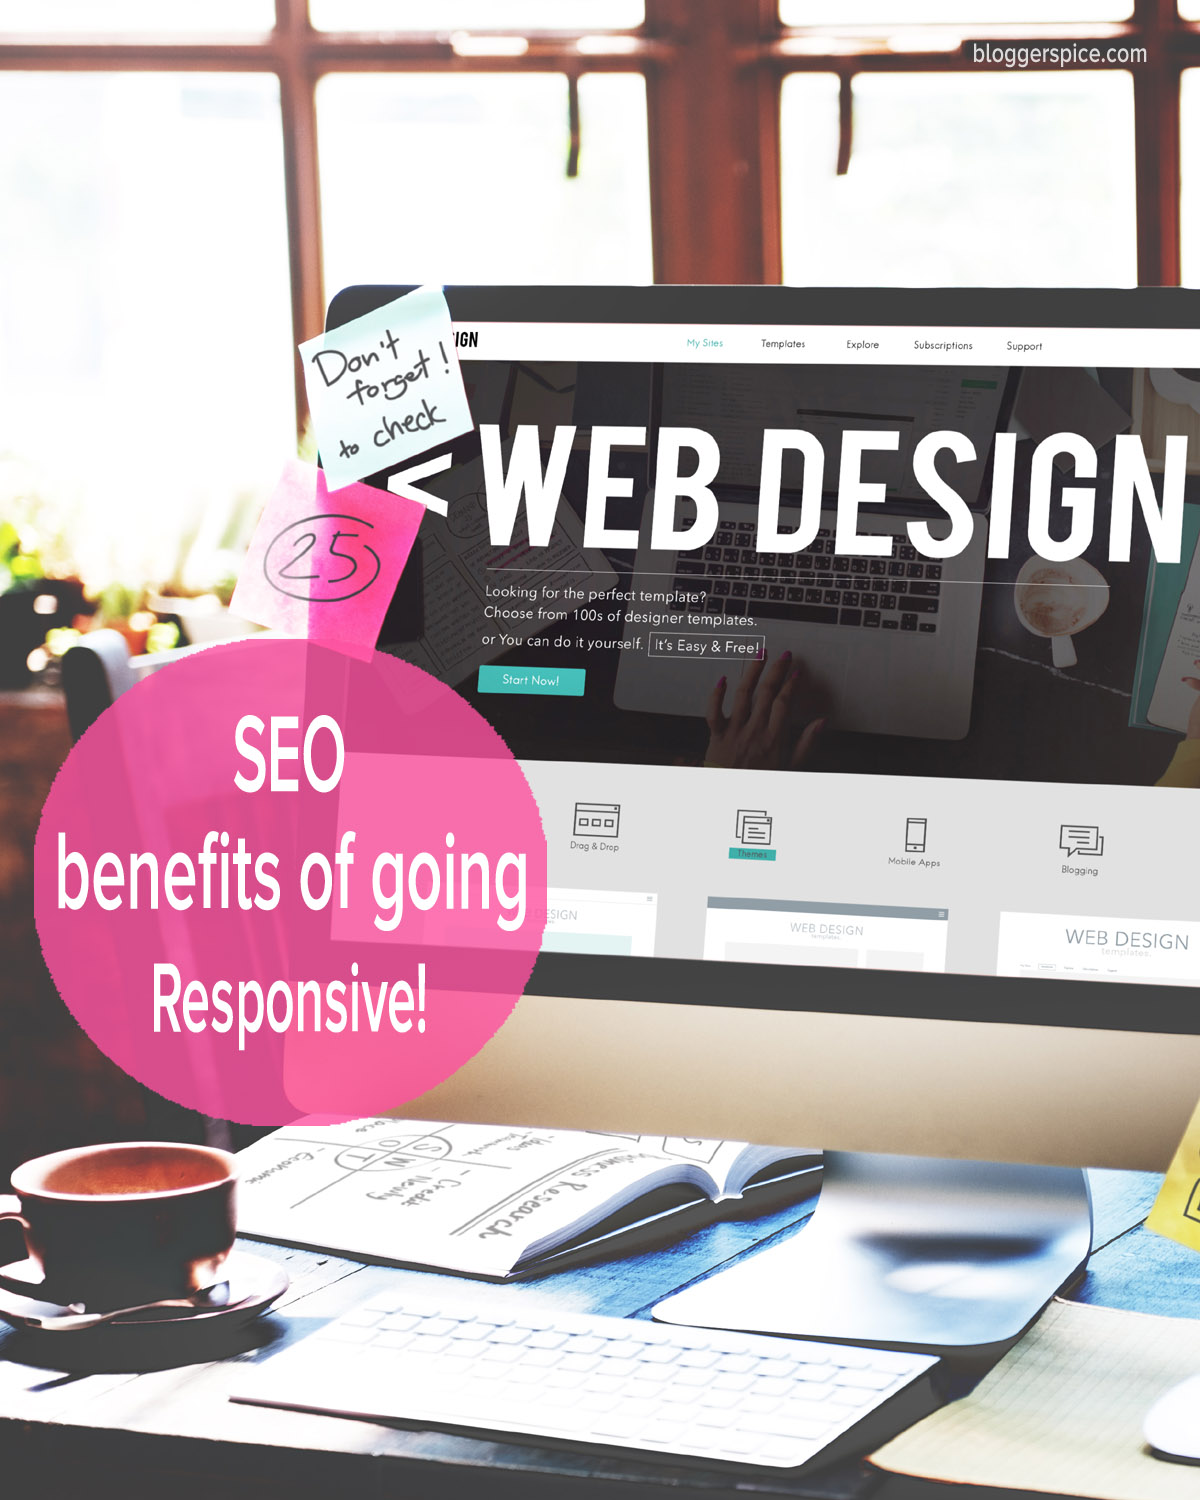 SEO Benefits of Responsive Web Design